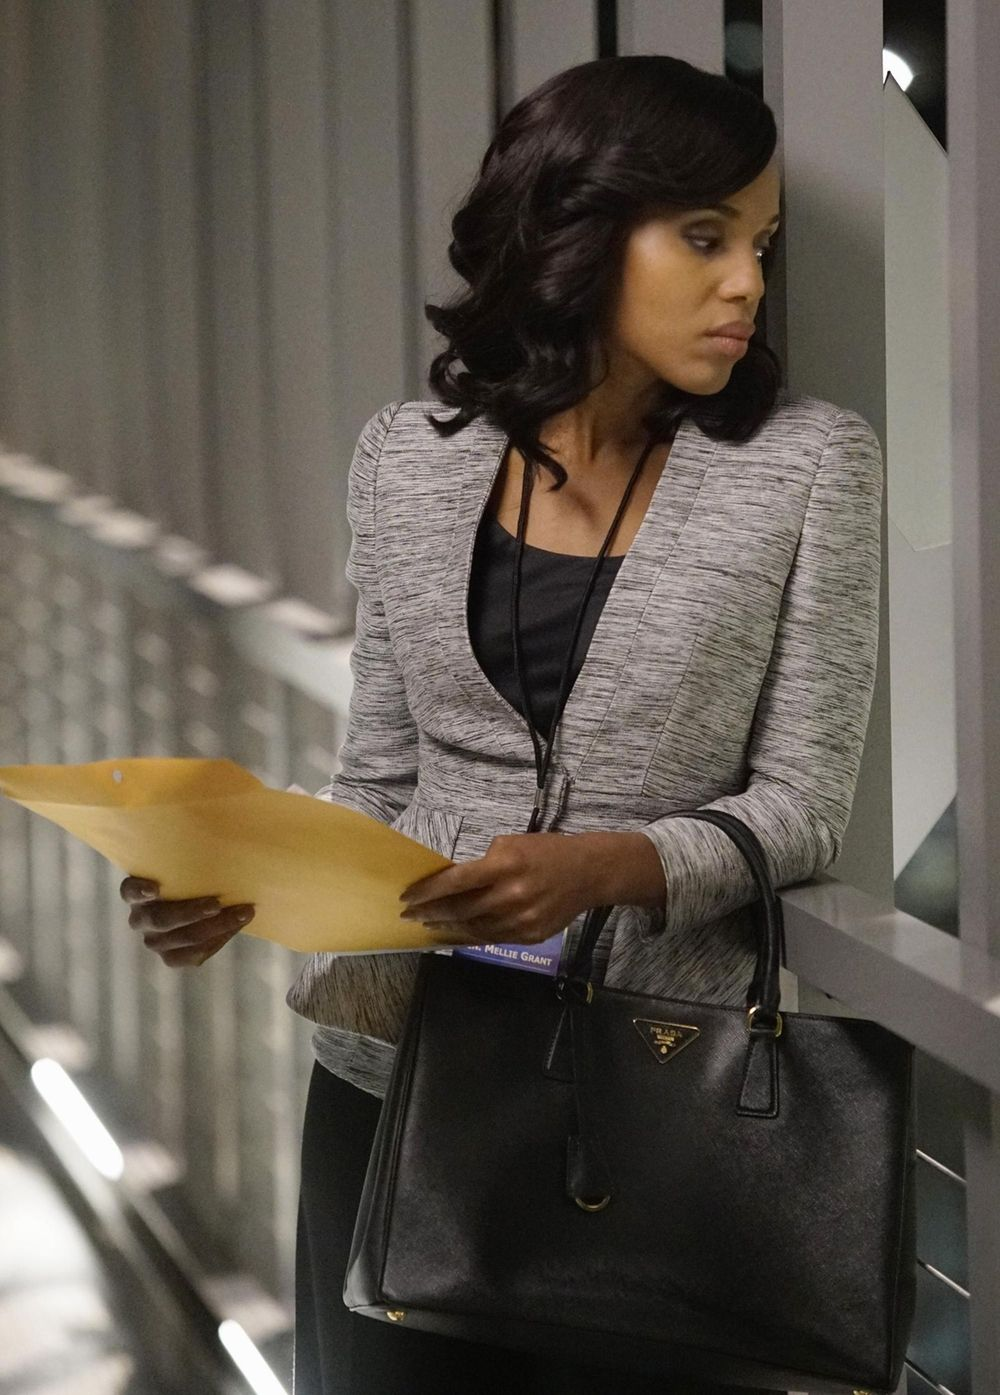 23fc00c7df01a5 Kerry Washington with Alexander McQueen Fold Peplum Jacket in Scandal -  Season 5 Episode 15